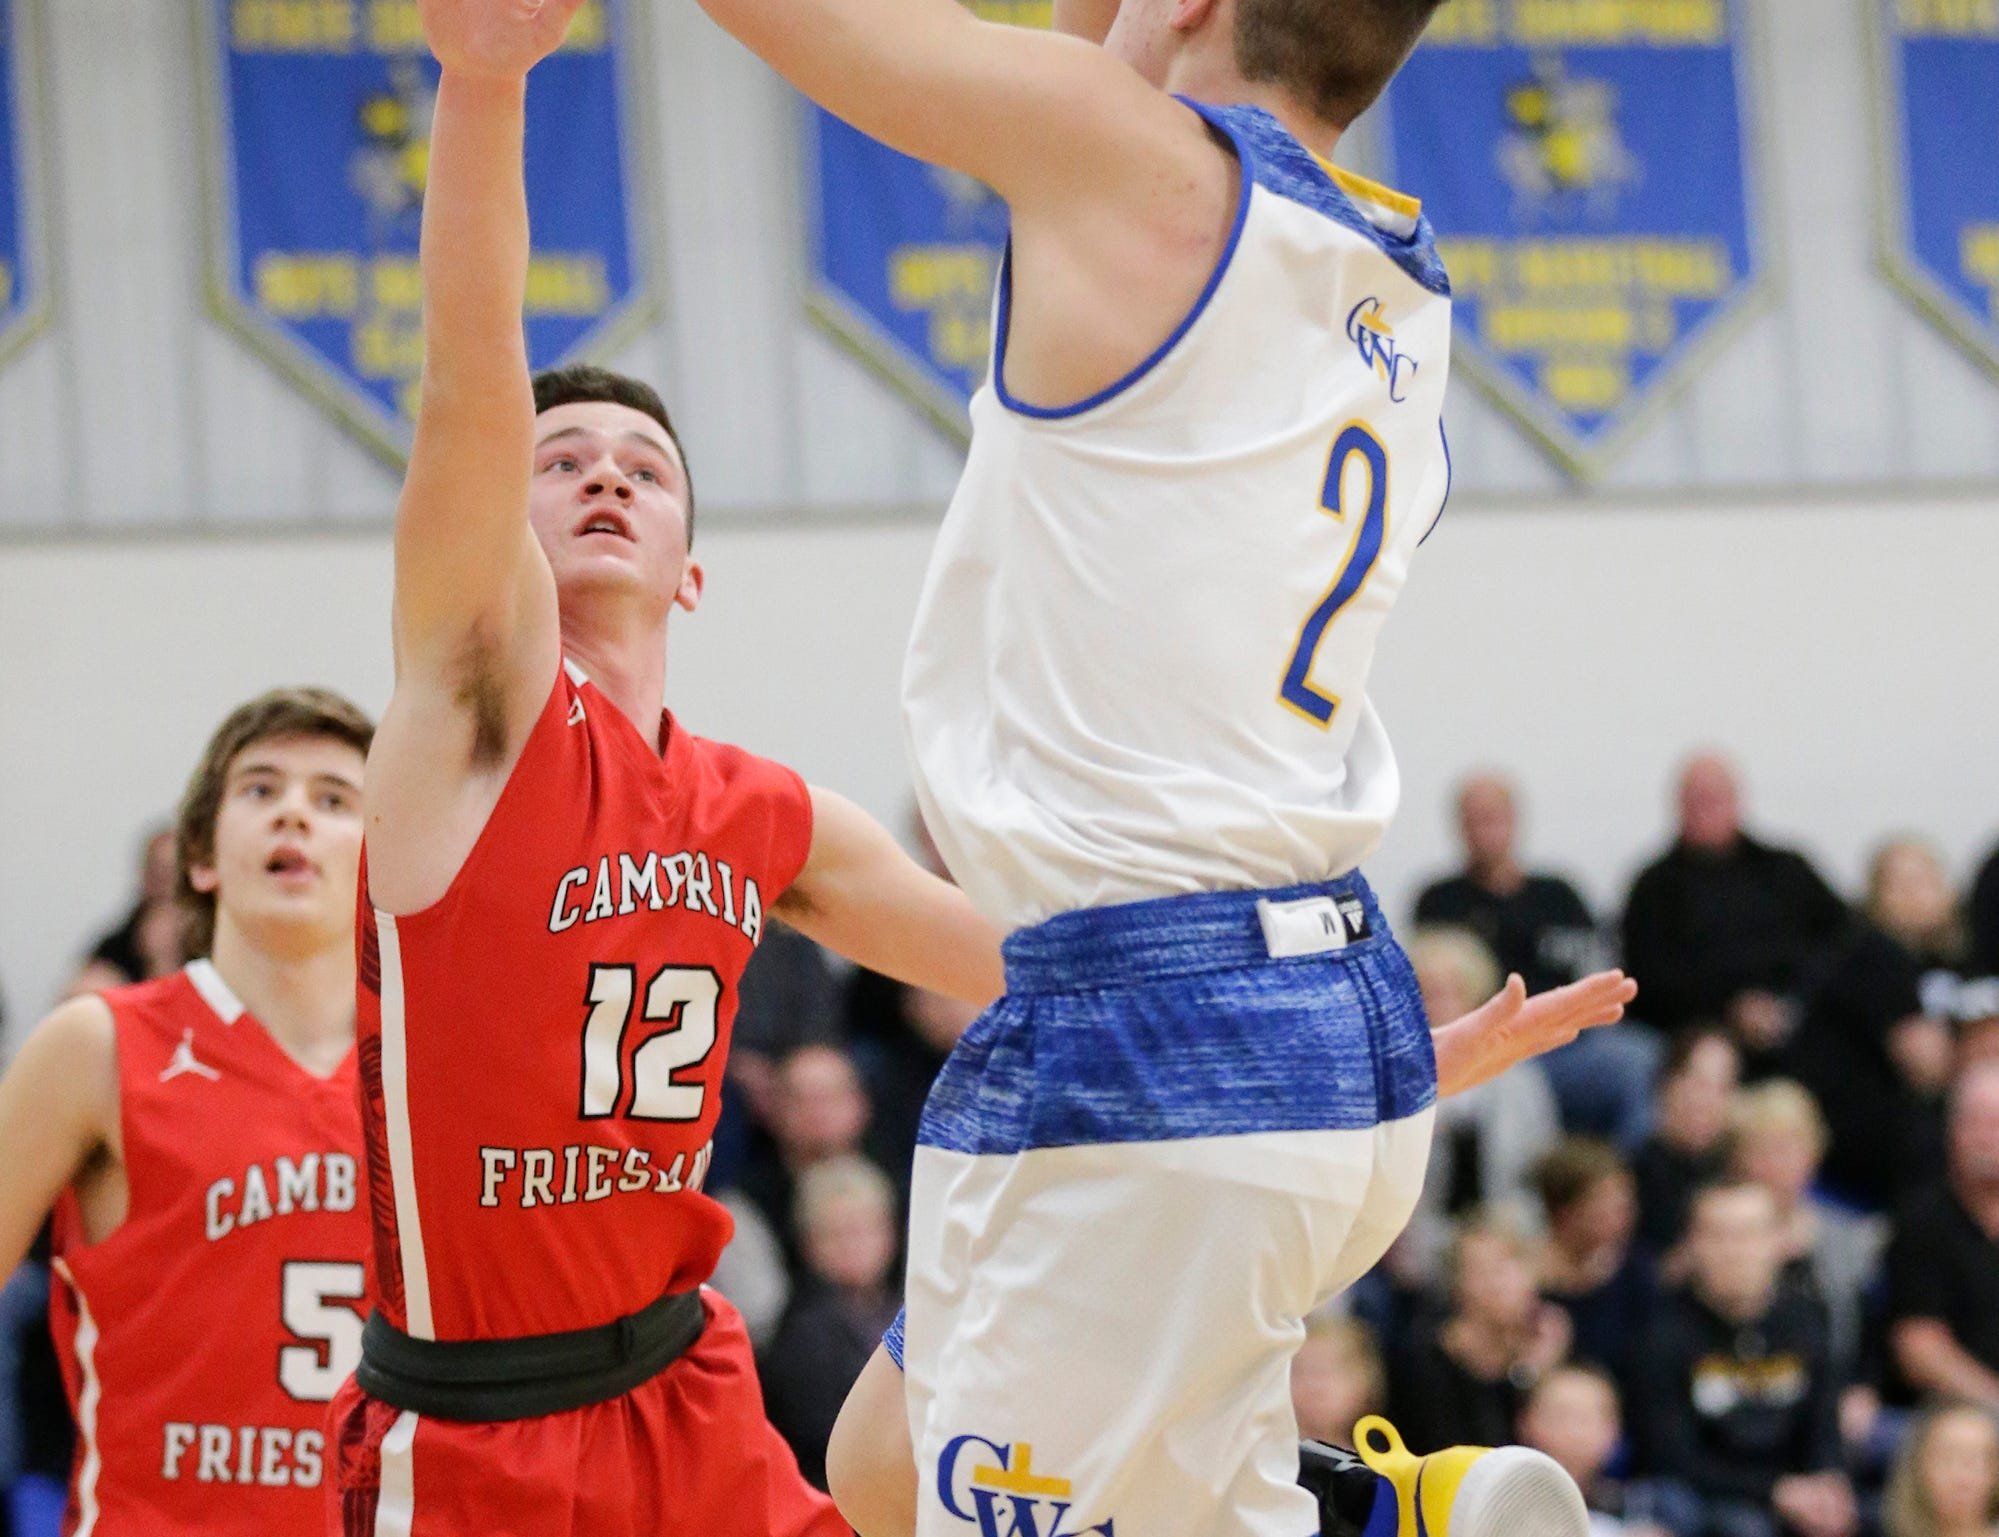 Central Wisconsin Christian High School boys basketball's Zach Vander Werff goes up for a shot against Cambria-Friesland's Colt Wentland during their game Thursday, January 3, 2019 in Waupun. Cambria-Friesland won the game 62-61. Doug Raflik/USA TODAY NETWORK-Wisconsin